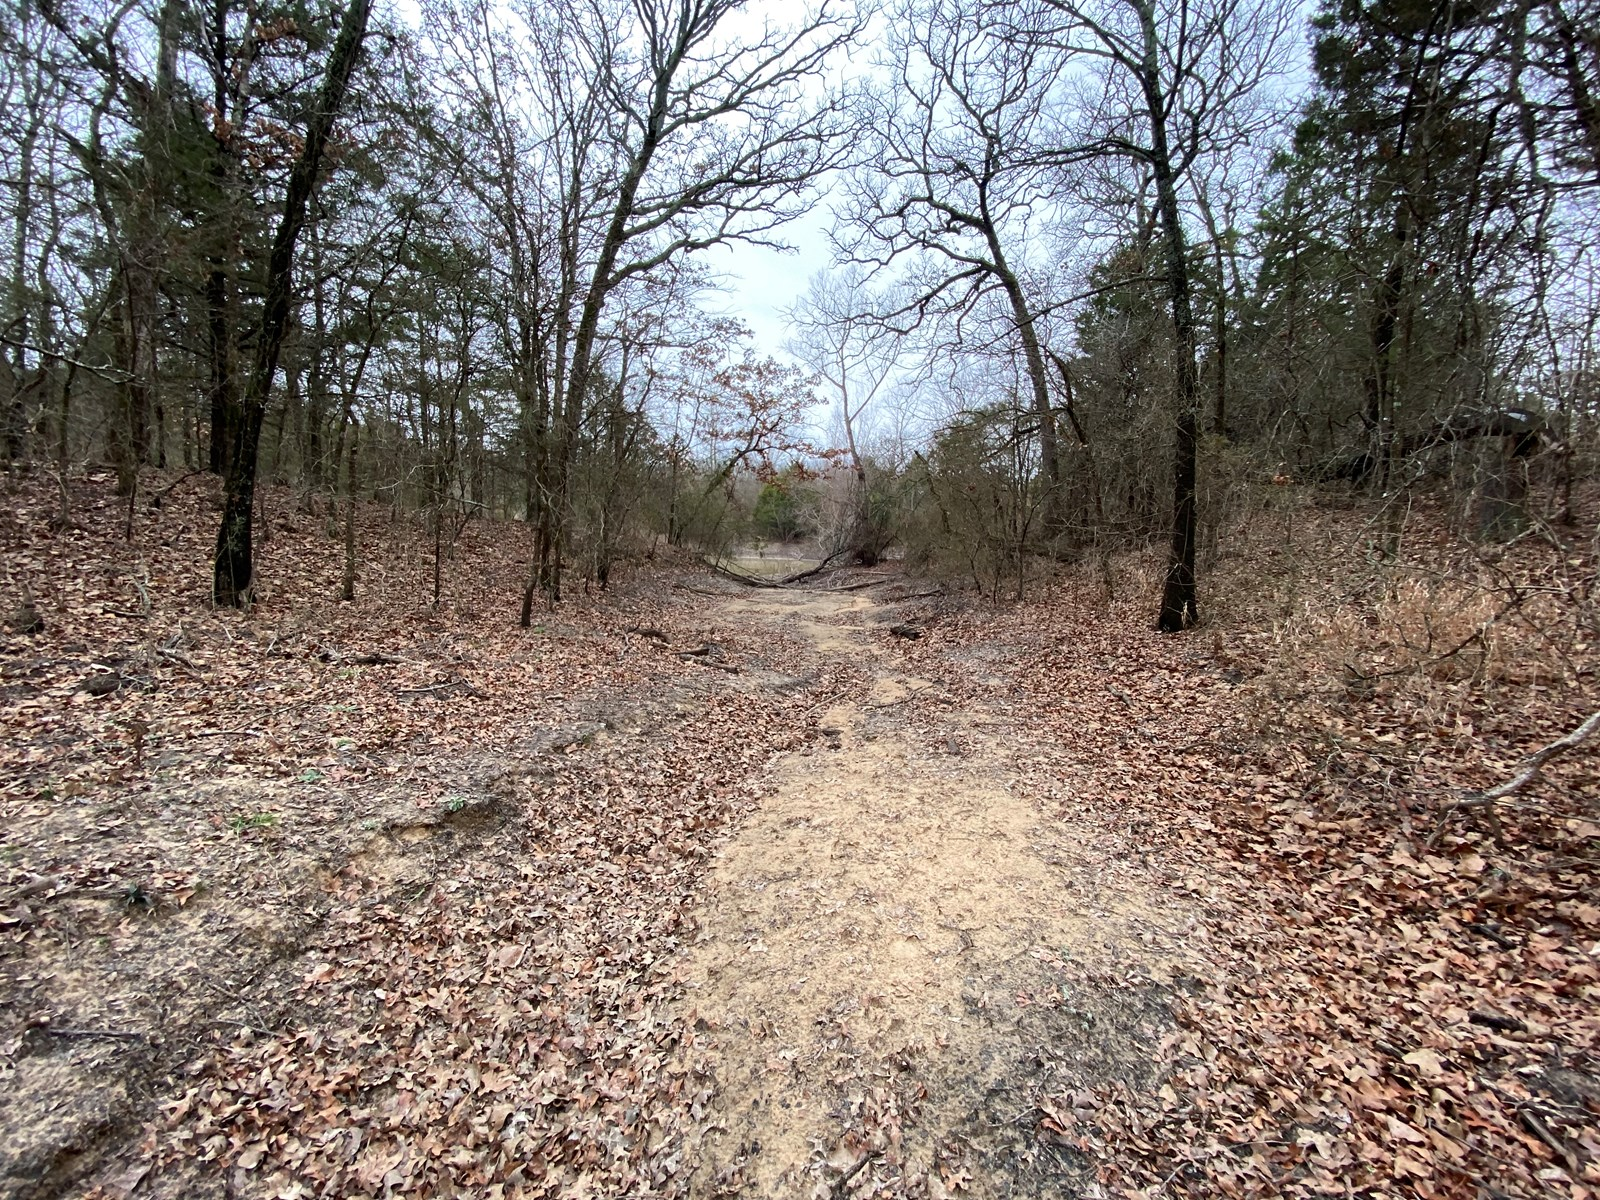 50 Acre Tract of Land on Highway 70 Near Lake Murray